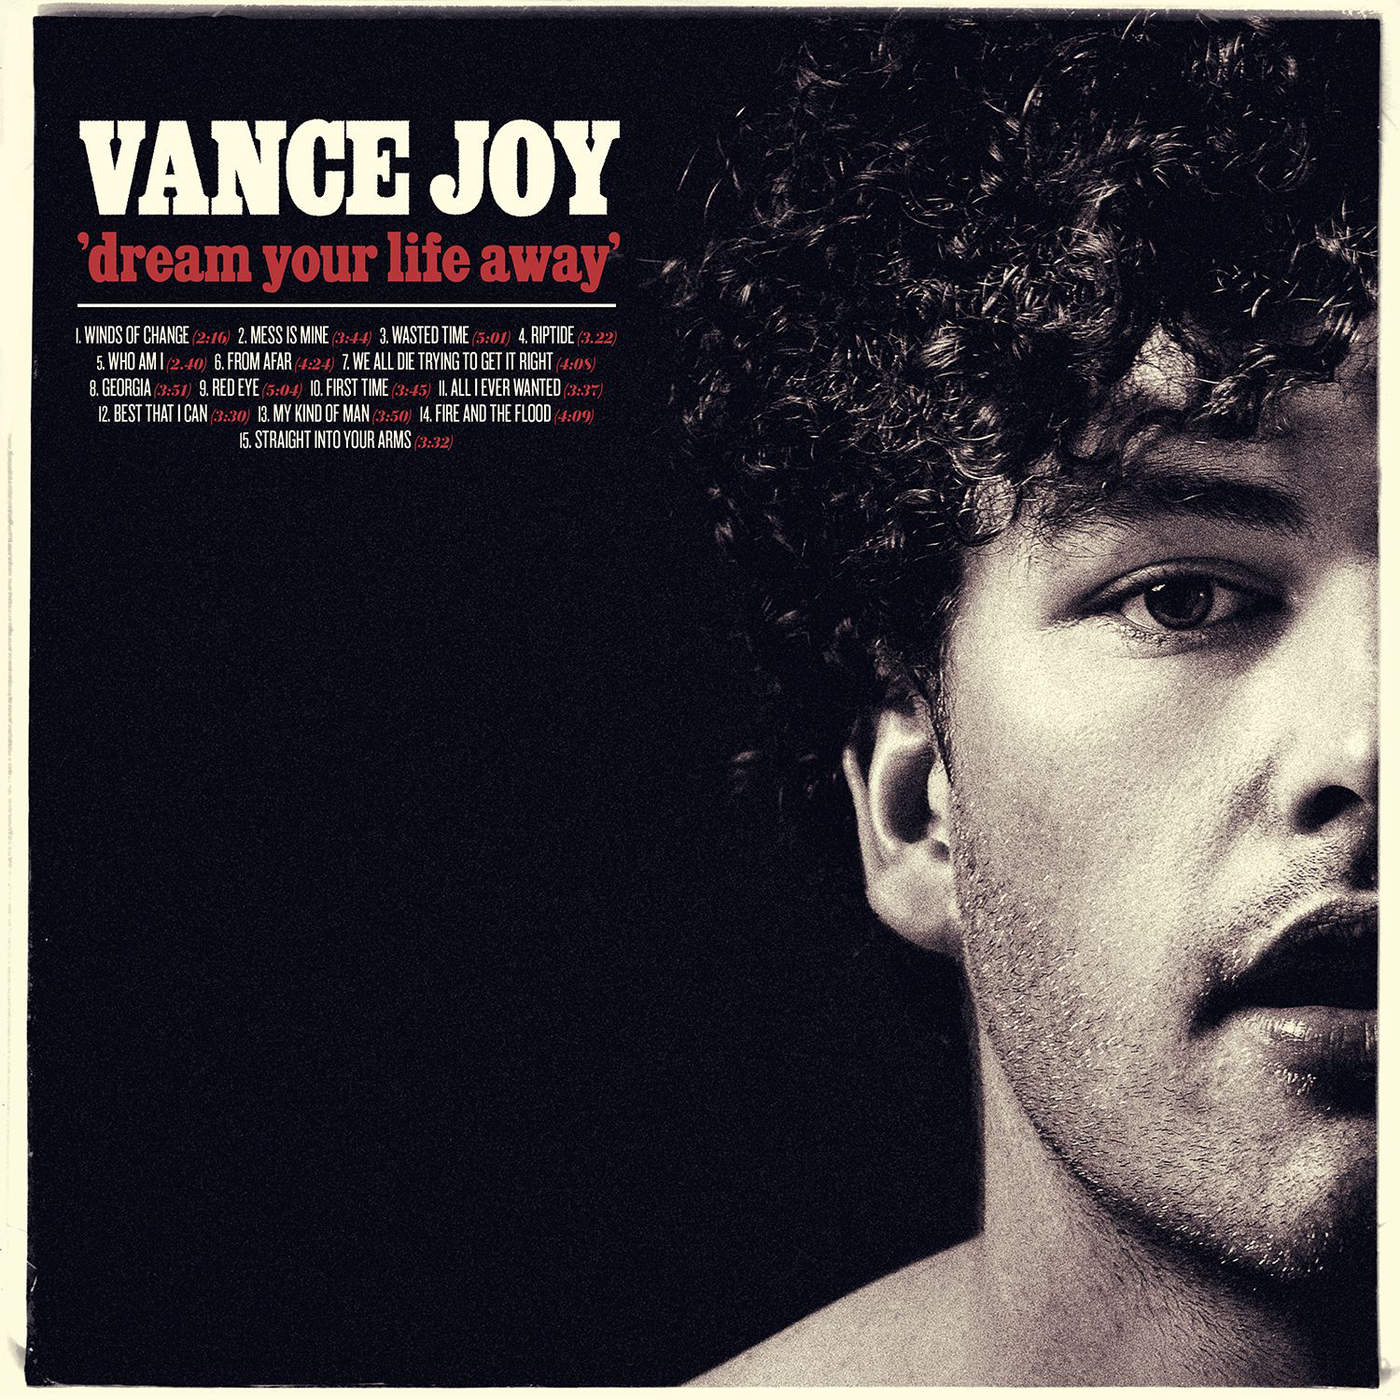 Vance Joy - Dream Your Life Away (Special Edition) Cover